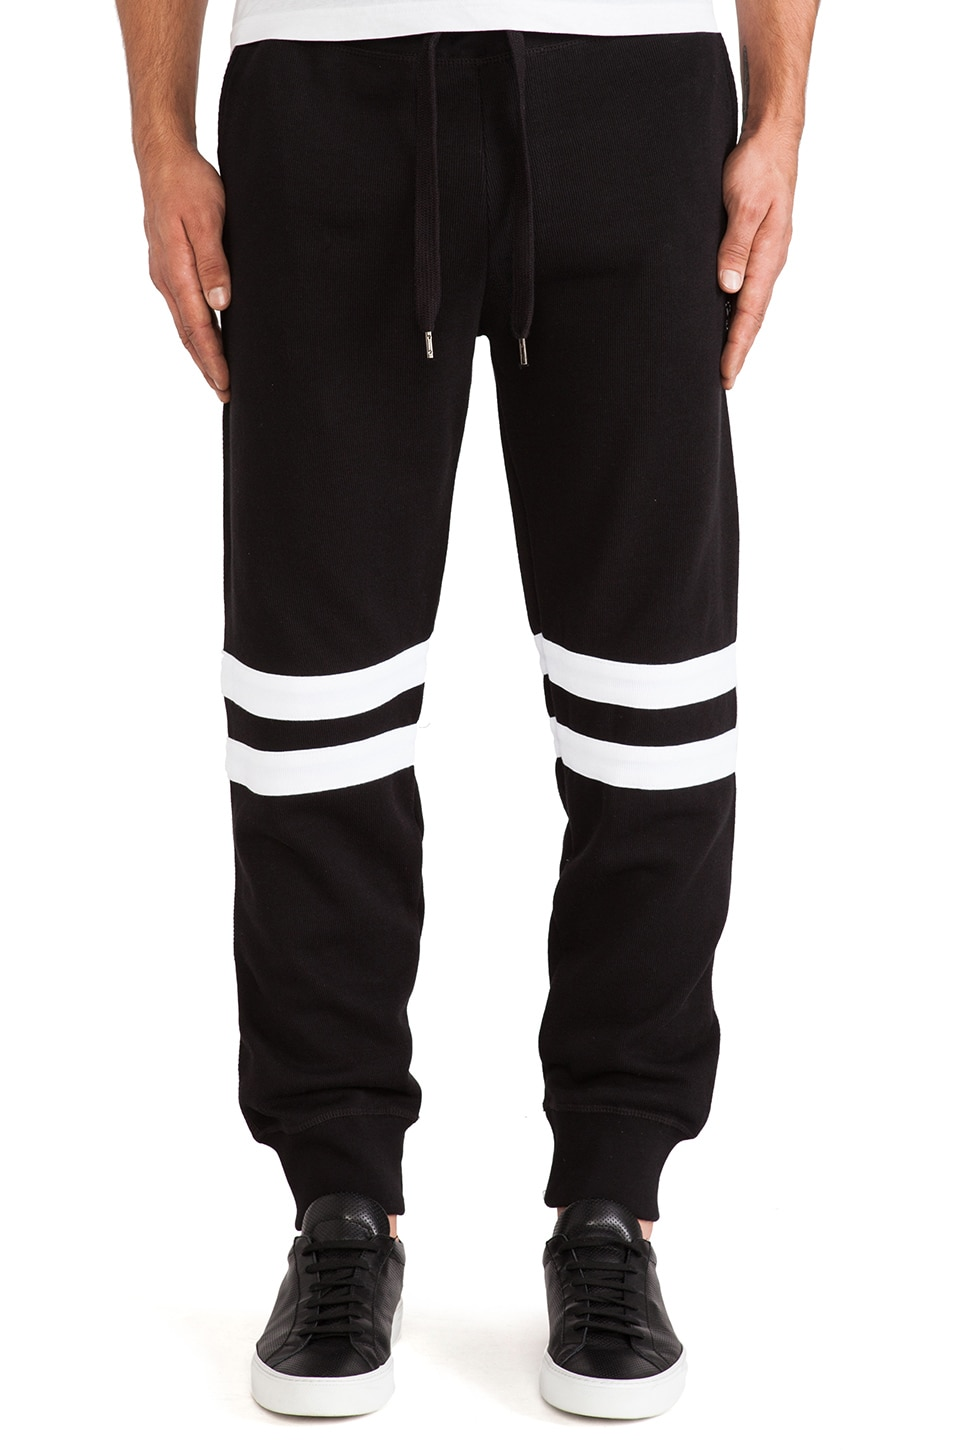 40 OZ NY Sweatpant in Black